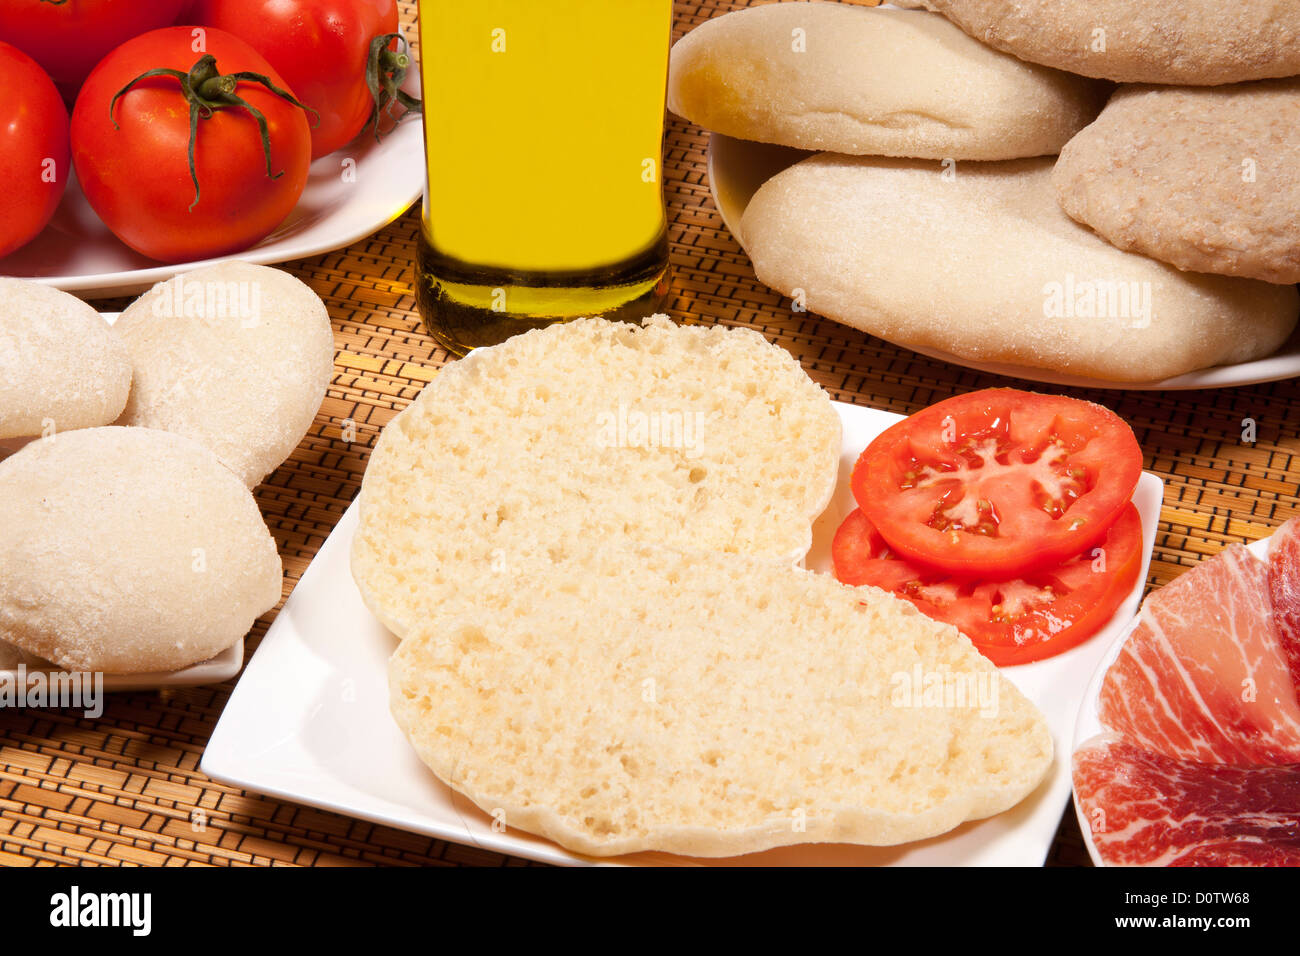 Breakfast muffin with extra virgin olive oil and ham tomato Antequera Andalusia Spain - Stock Image